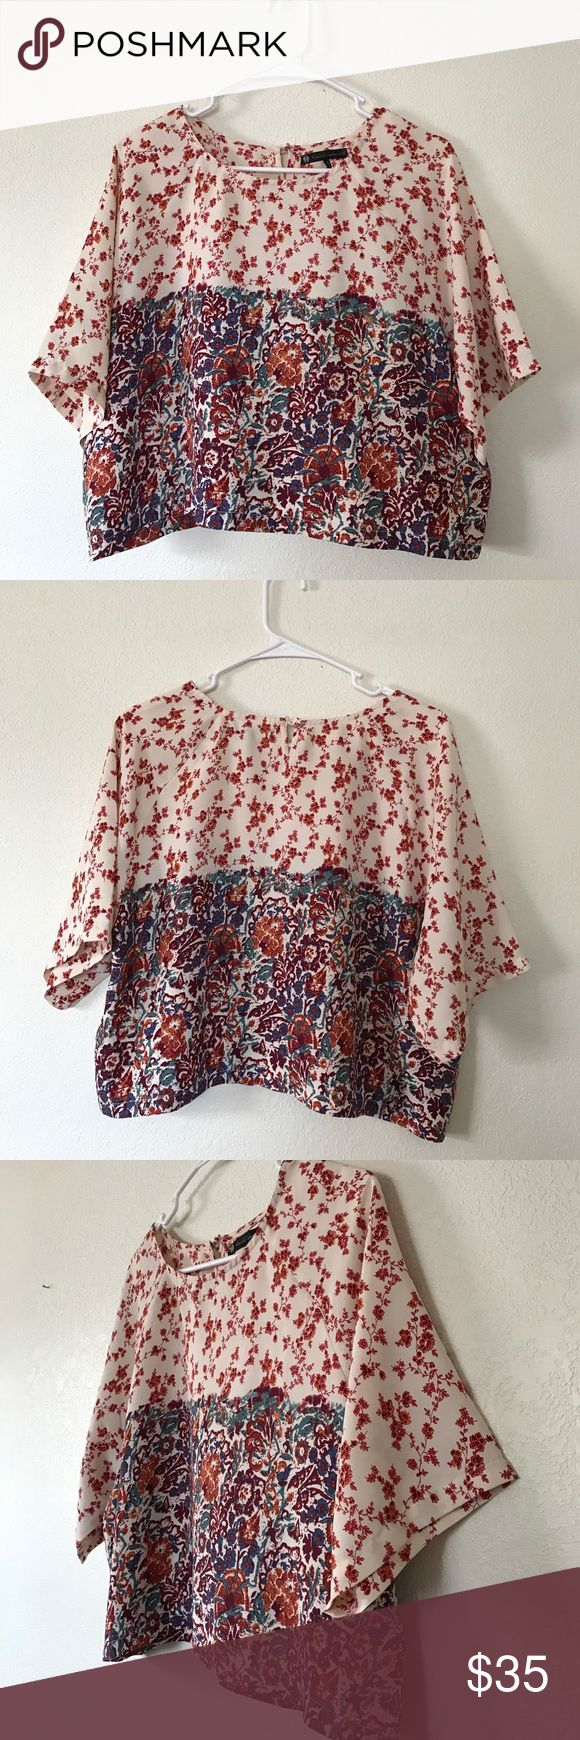 """House Of Harlow 1960 Short Flower Blouse Retro Super cute retro style short Blouse by House Of Harlow 1960 in a size small. Blouse is in great condition with no rips, snags, or stains. This is a short style Blouse that was made to be worn with a high rising bottom (skirt/jeans) or to show your midriff. Blouse measures approximately when laid flat: 19"""" long, 21.5"""" from armpit to armpit, sleeve length is 15"""". Feel free to ask any questions! House of Harlow 1960 Tops Blouses"""